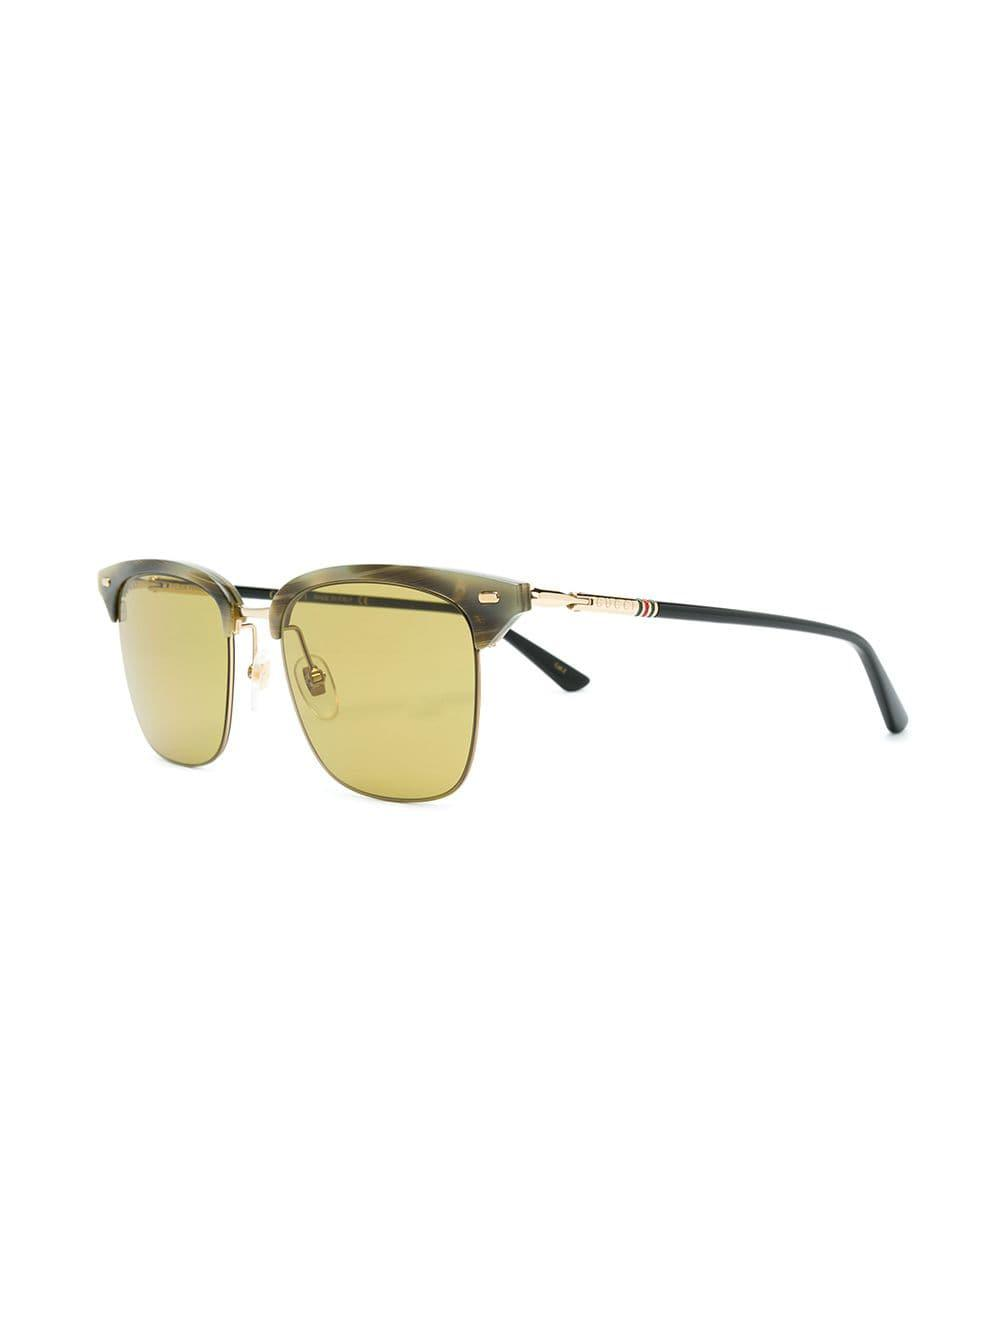 f856568d389 Gucci Clubmaster Style Sunglasses in Gray for Men - Lyst